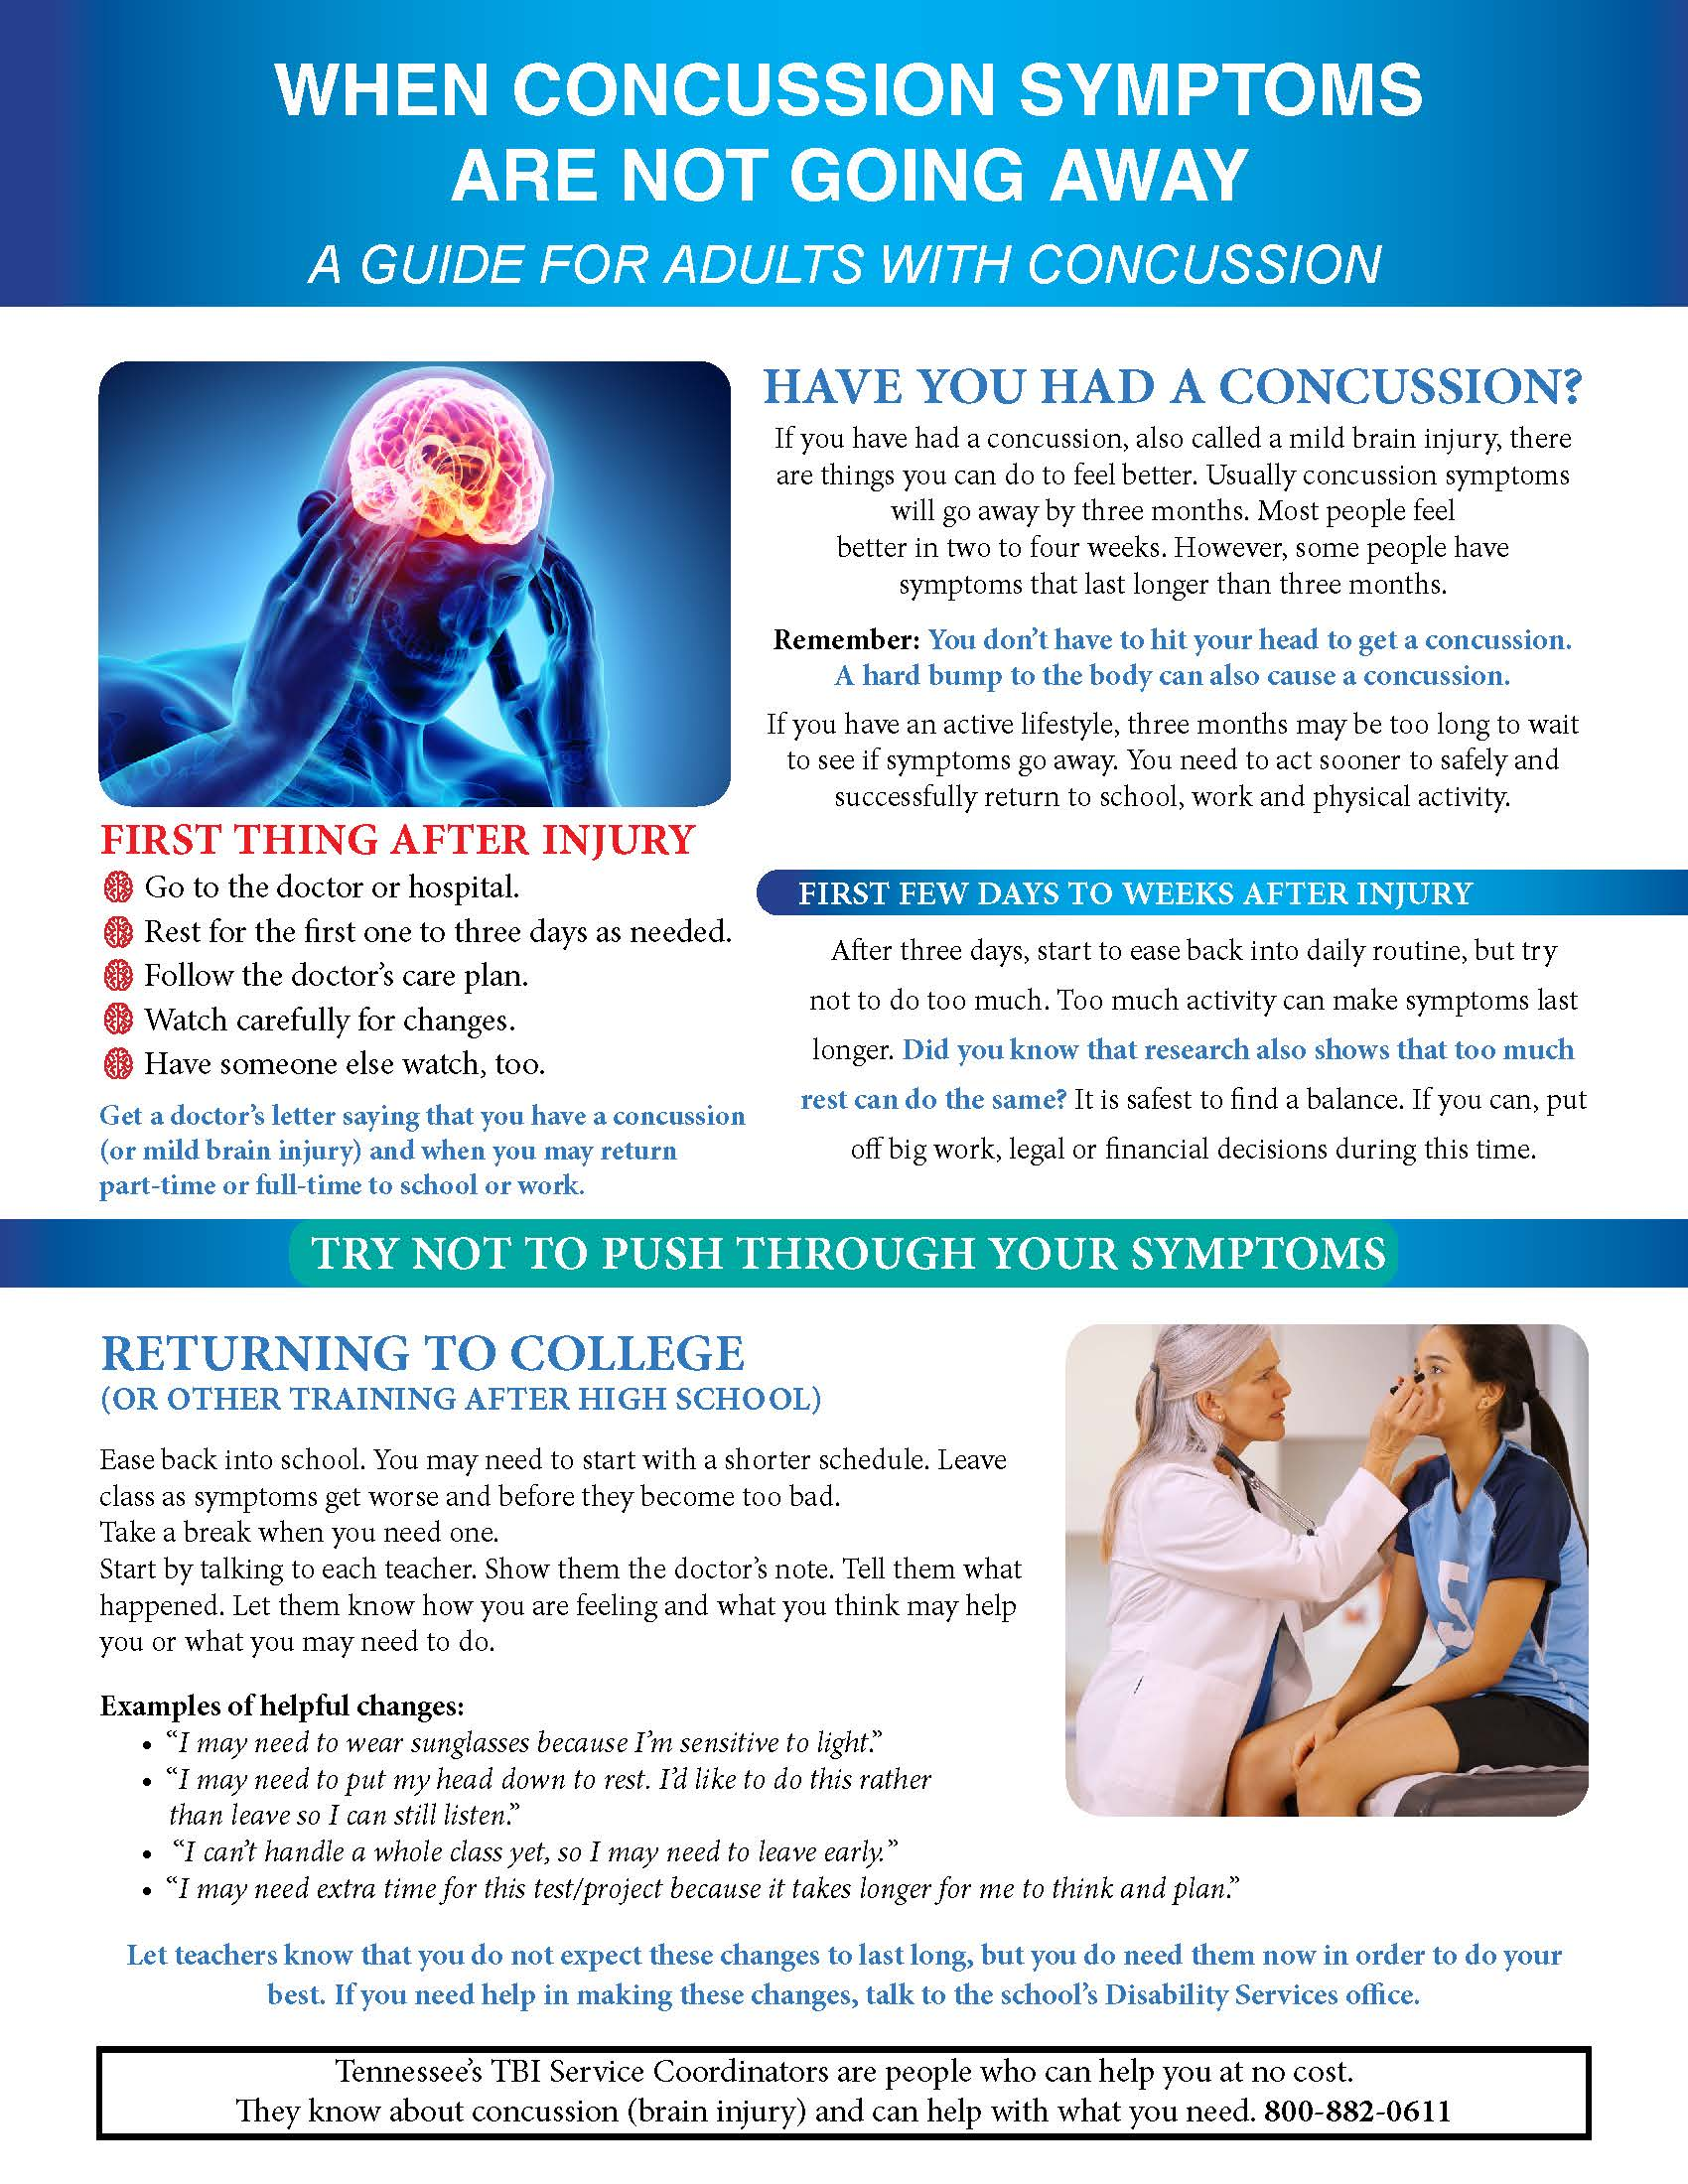 Adult Concussion Guide